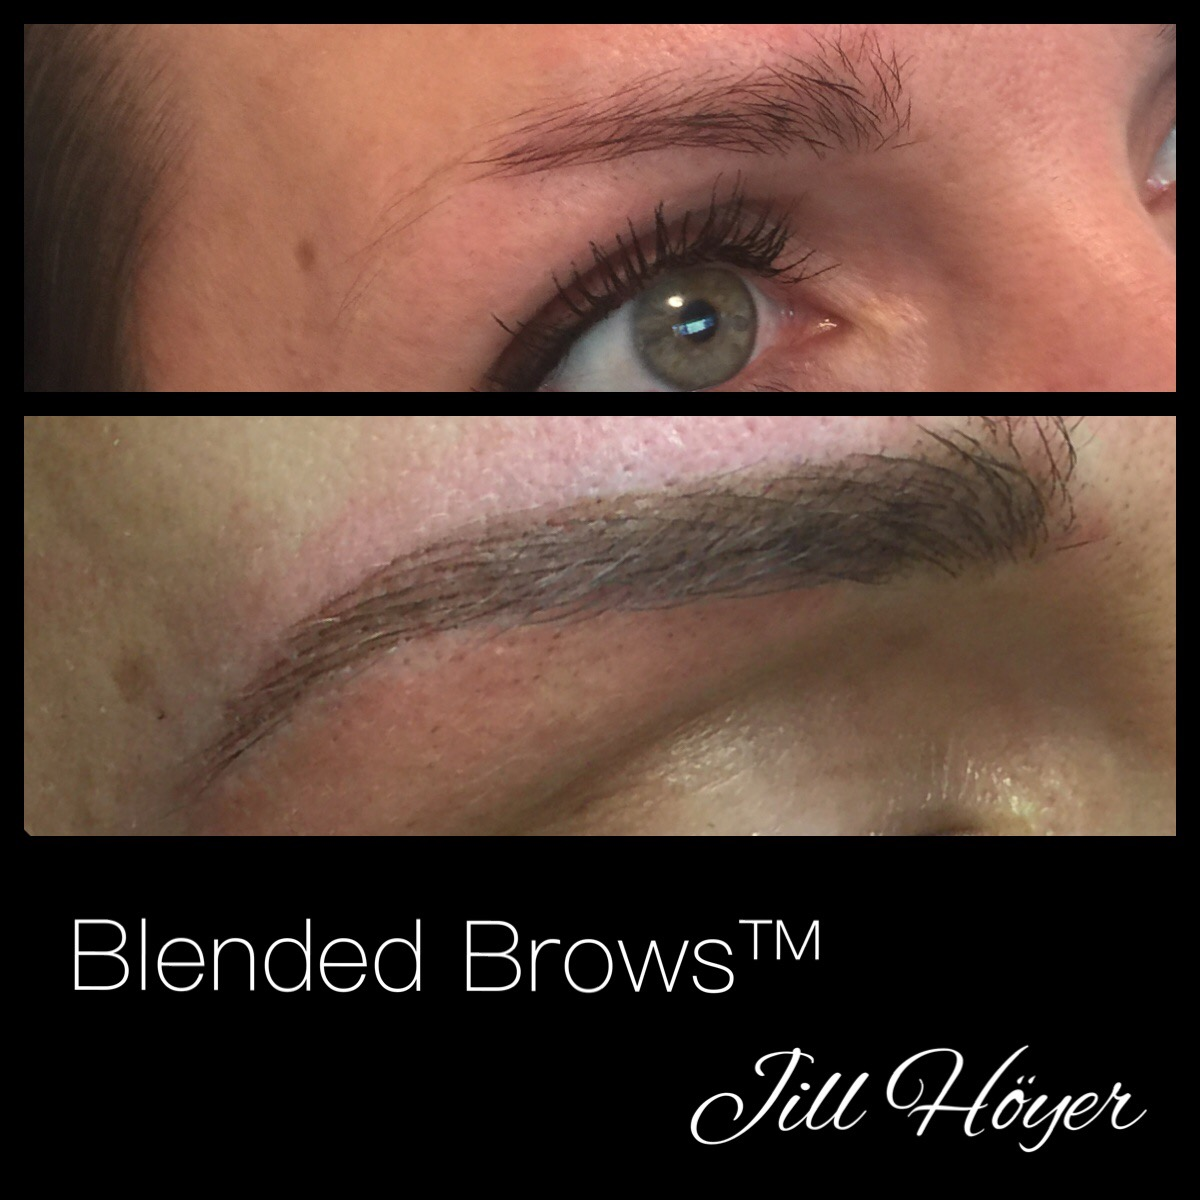 Blended Brows™